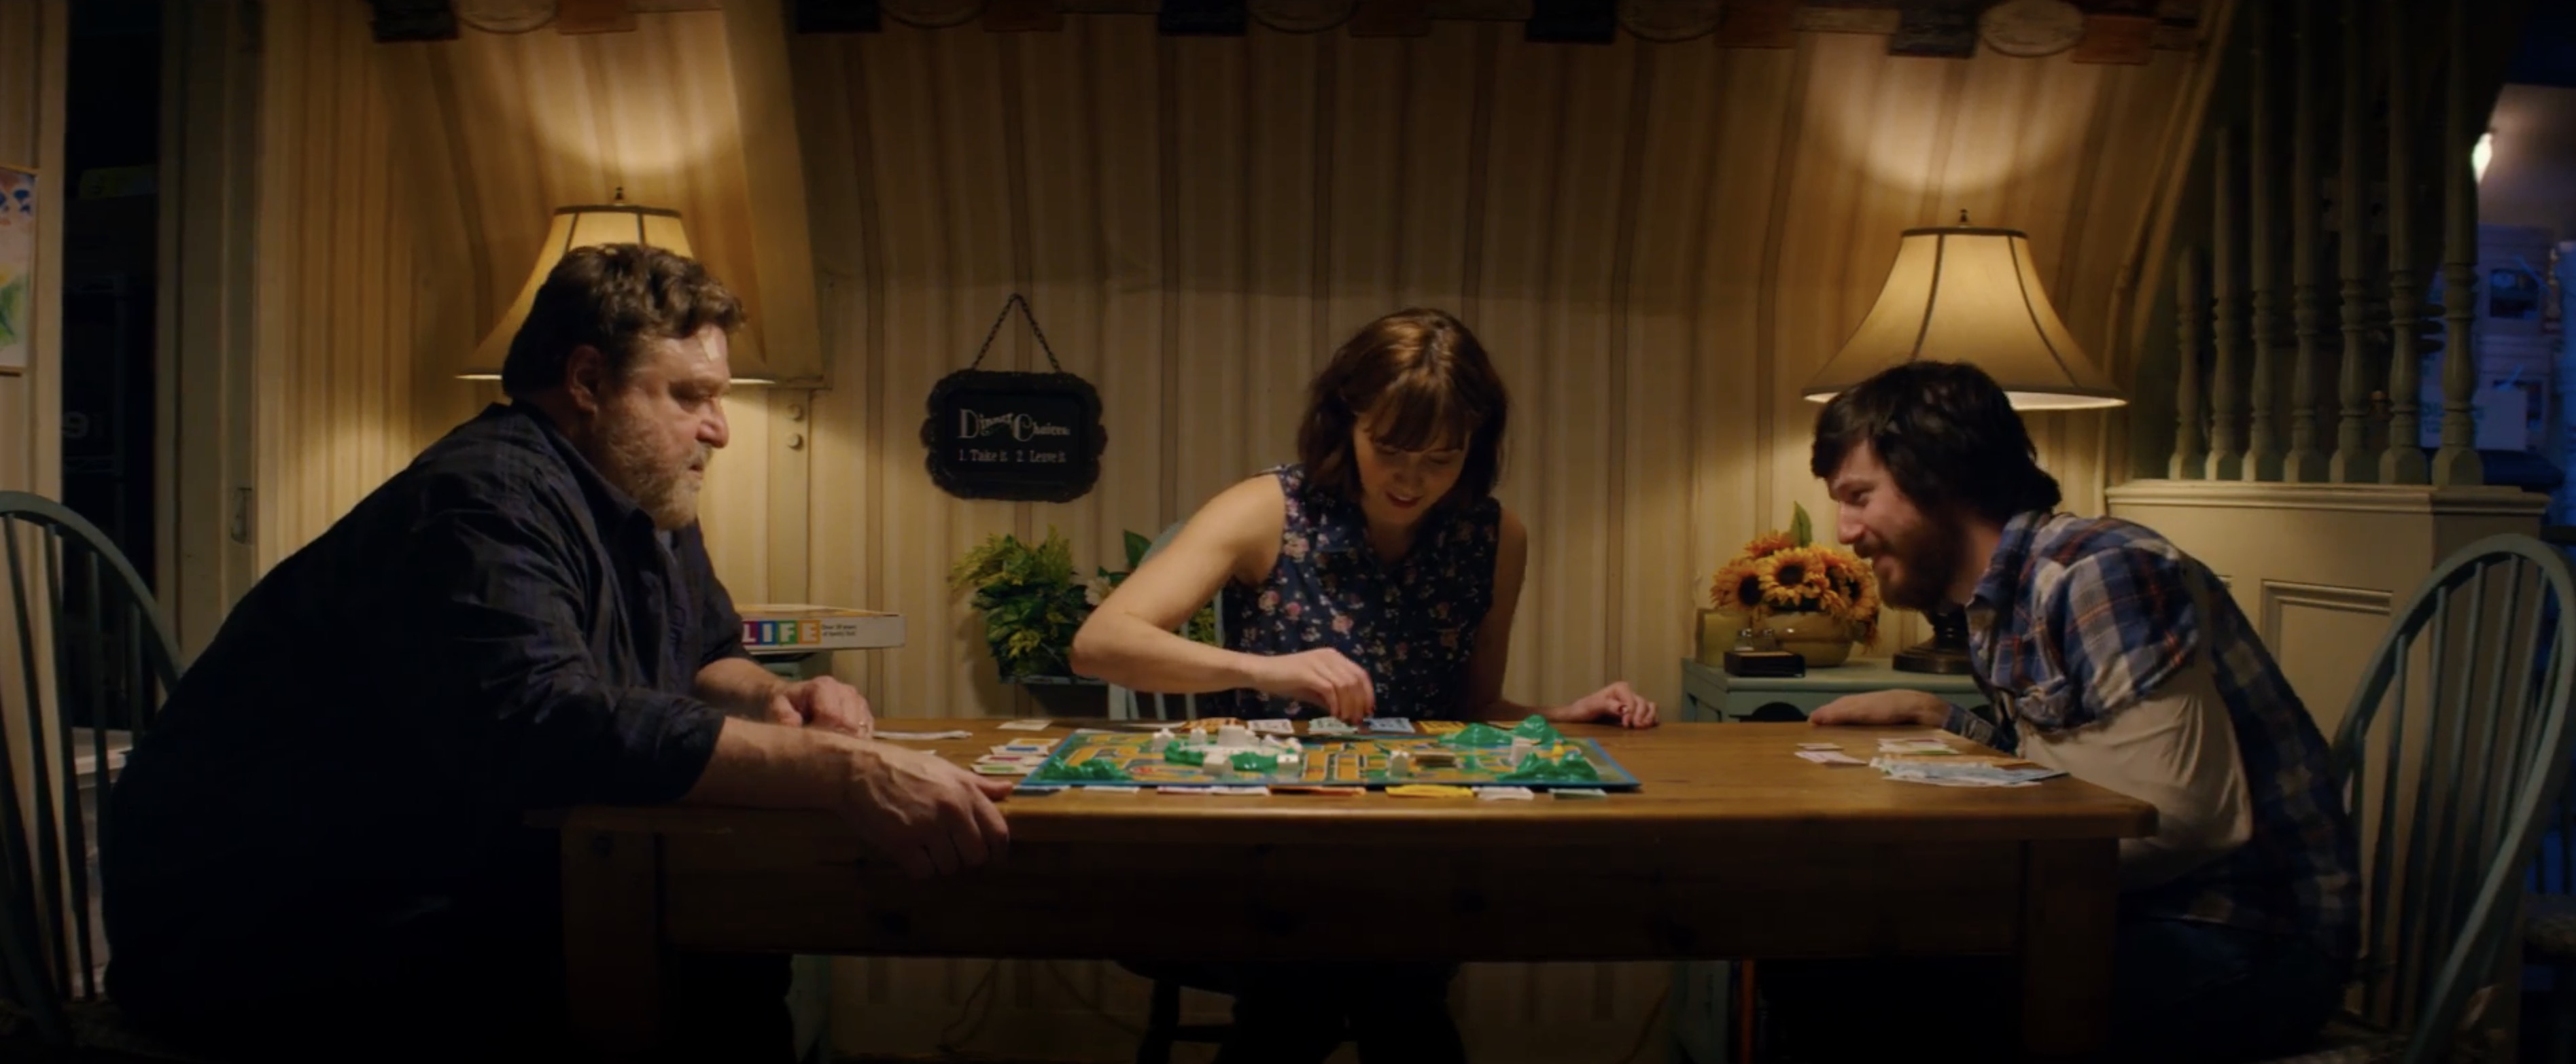 The Real '10 Cloverfield Lane' Mystery